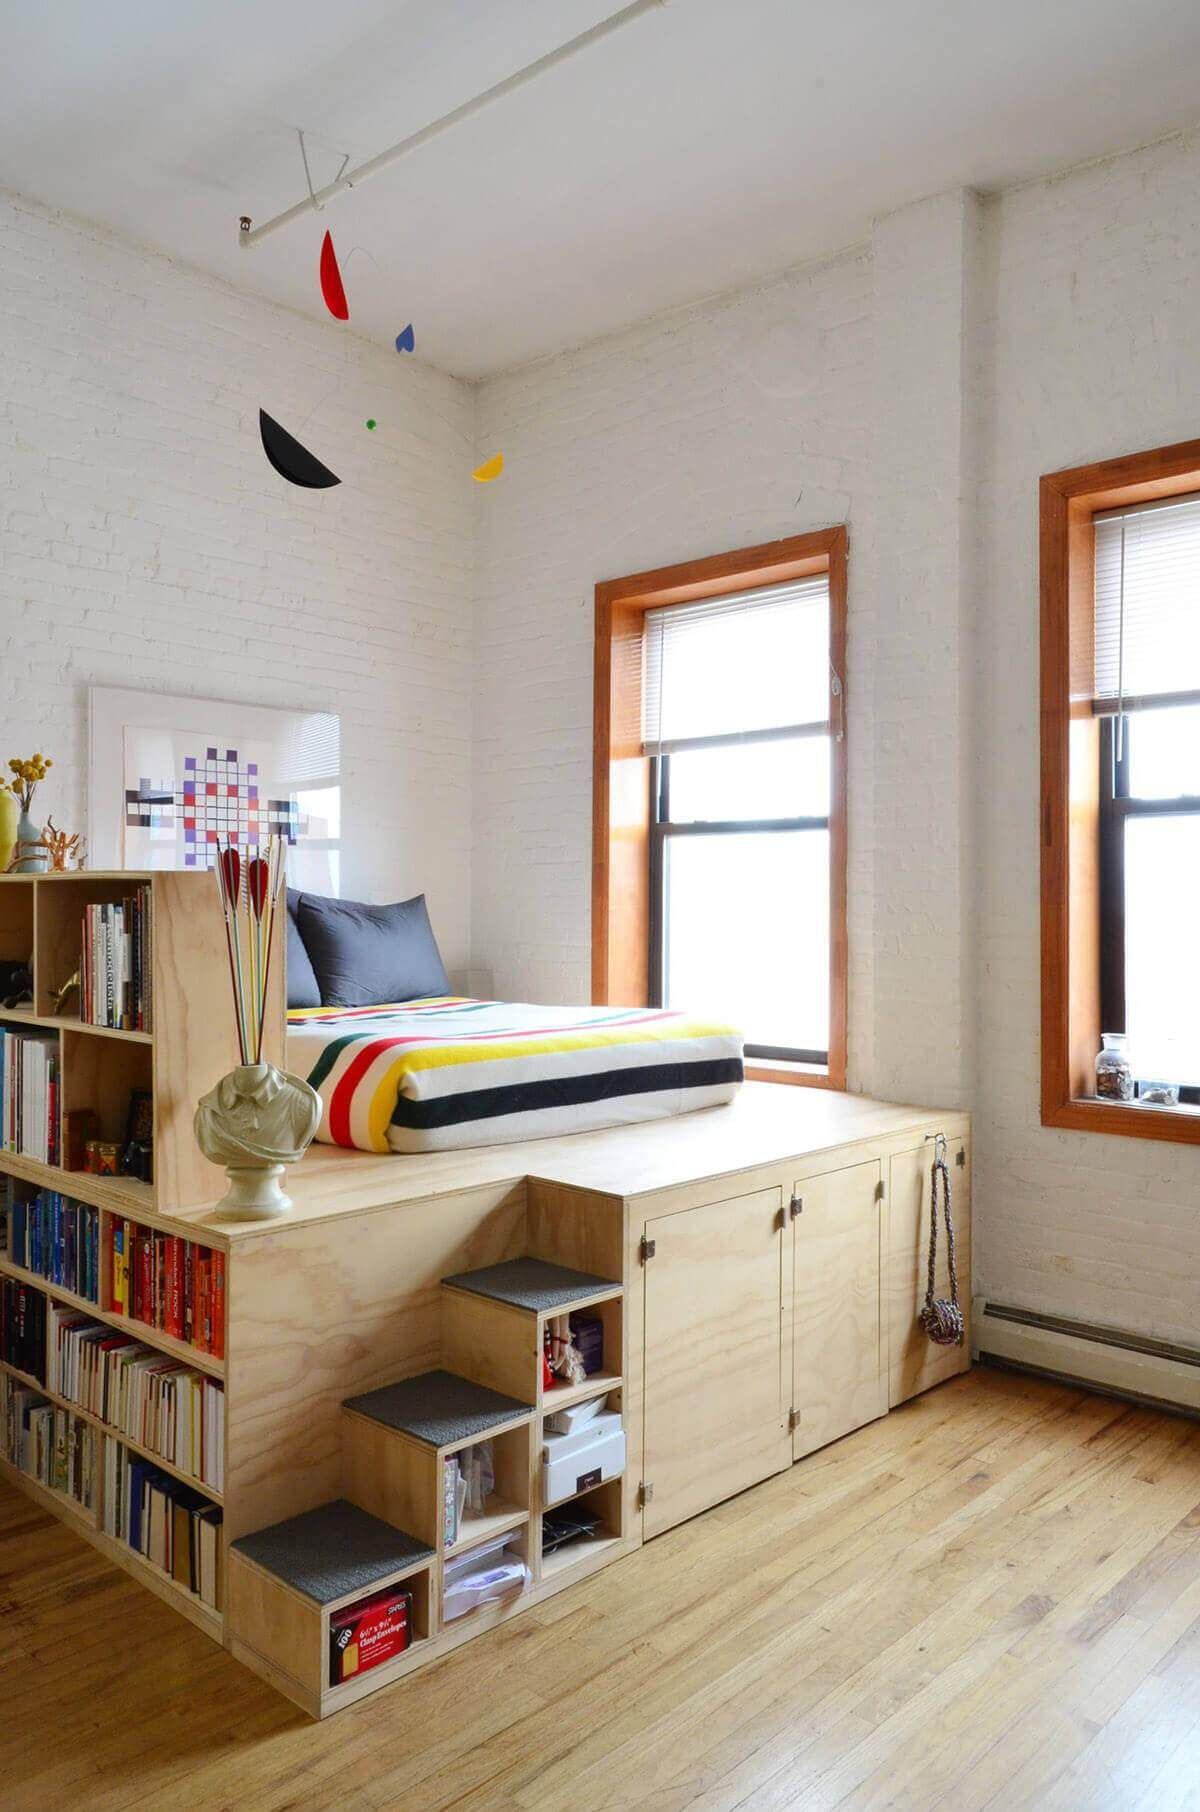 40 Space Saving Ideas For Small Bedrooms Tiny Bedroom Loft House